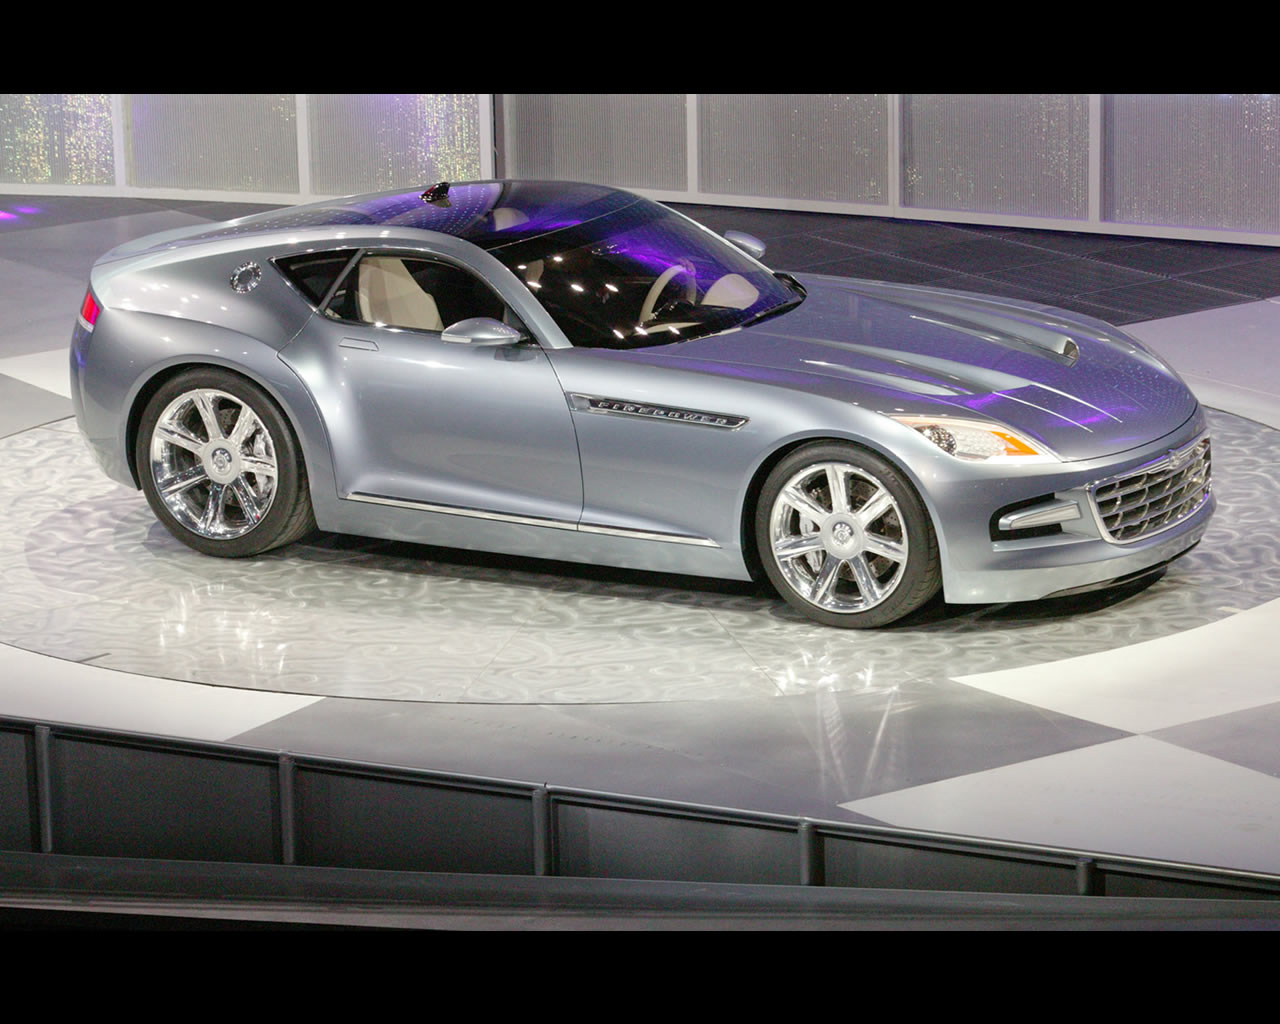 2019 Chrysler Firepower Concept photo - 1